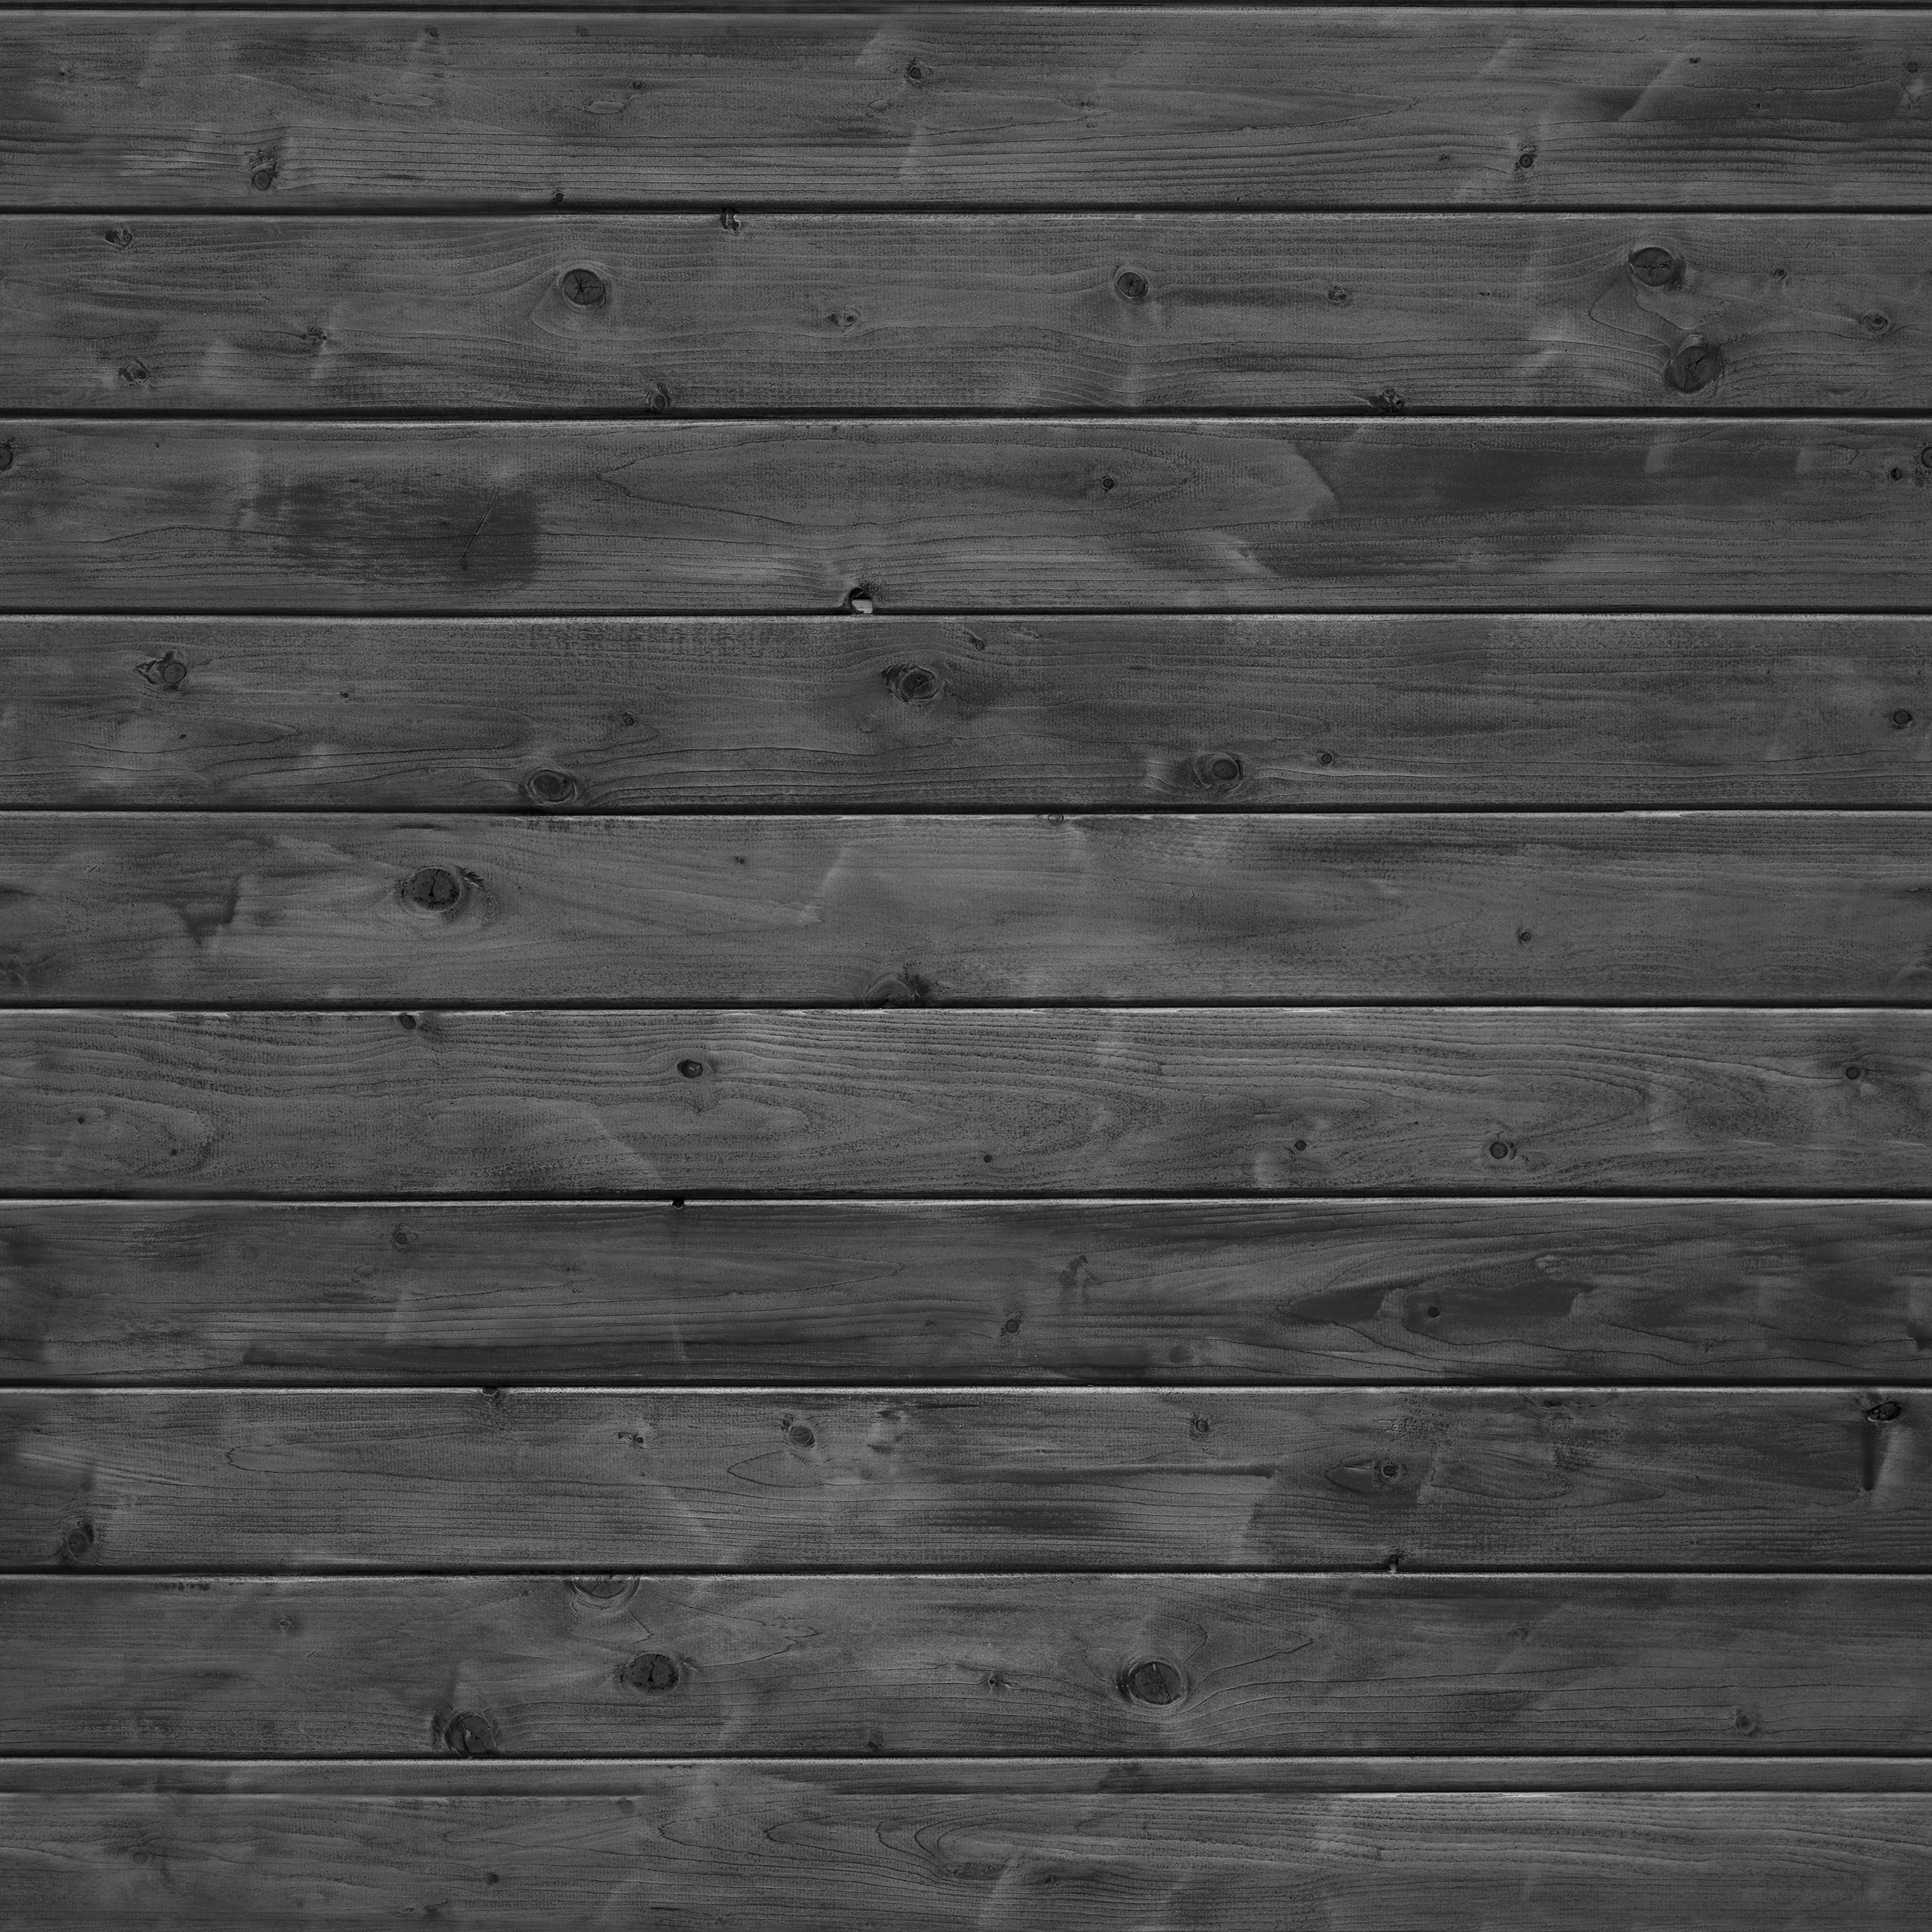 Vi42 Wood Dark Bw Texture Pattern Wallpaper